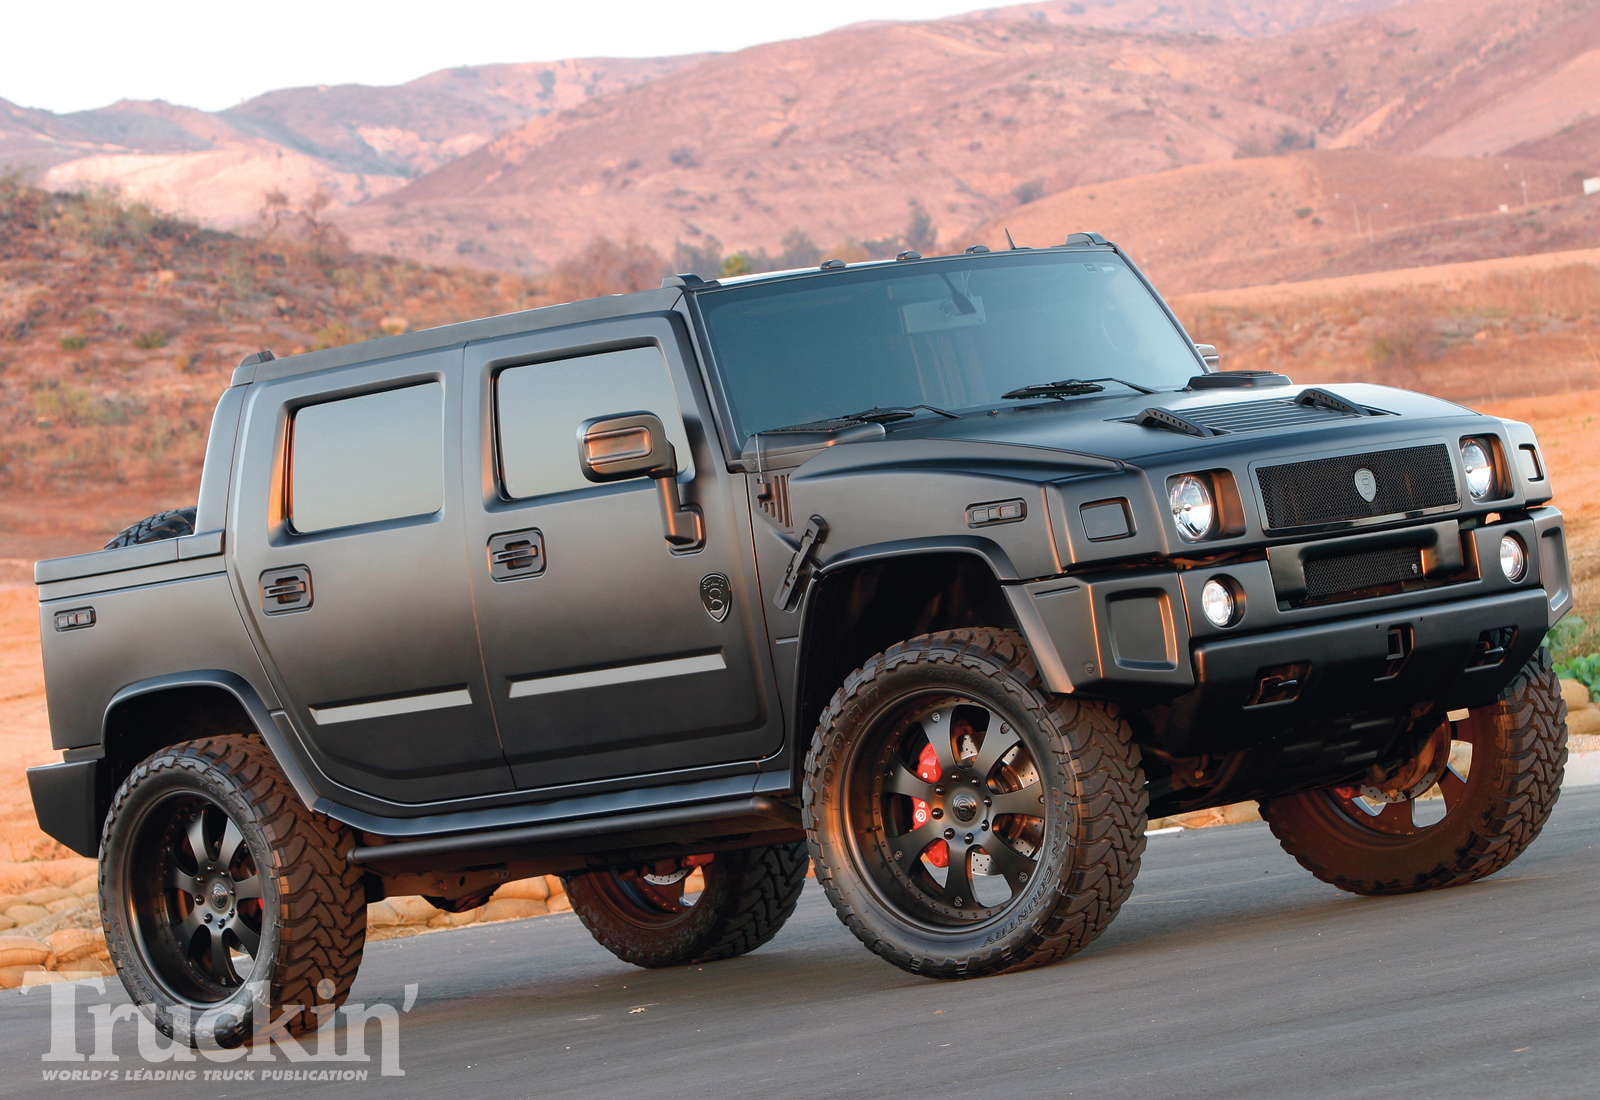 2007 hummer h2 sut information and photos zombiedrive hummer h2 sut 17 vanachro Gallery